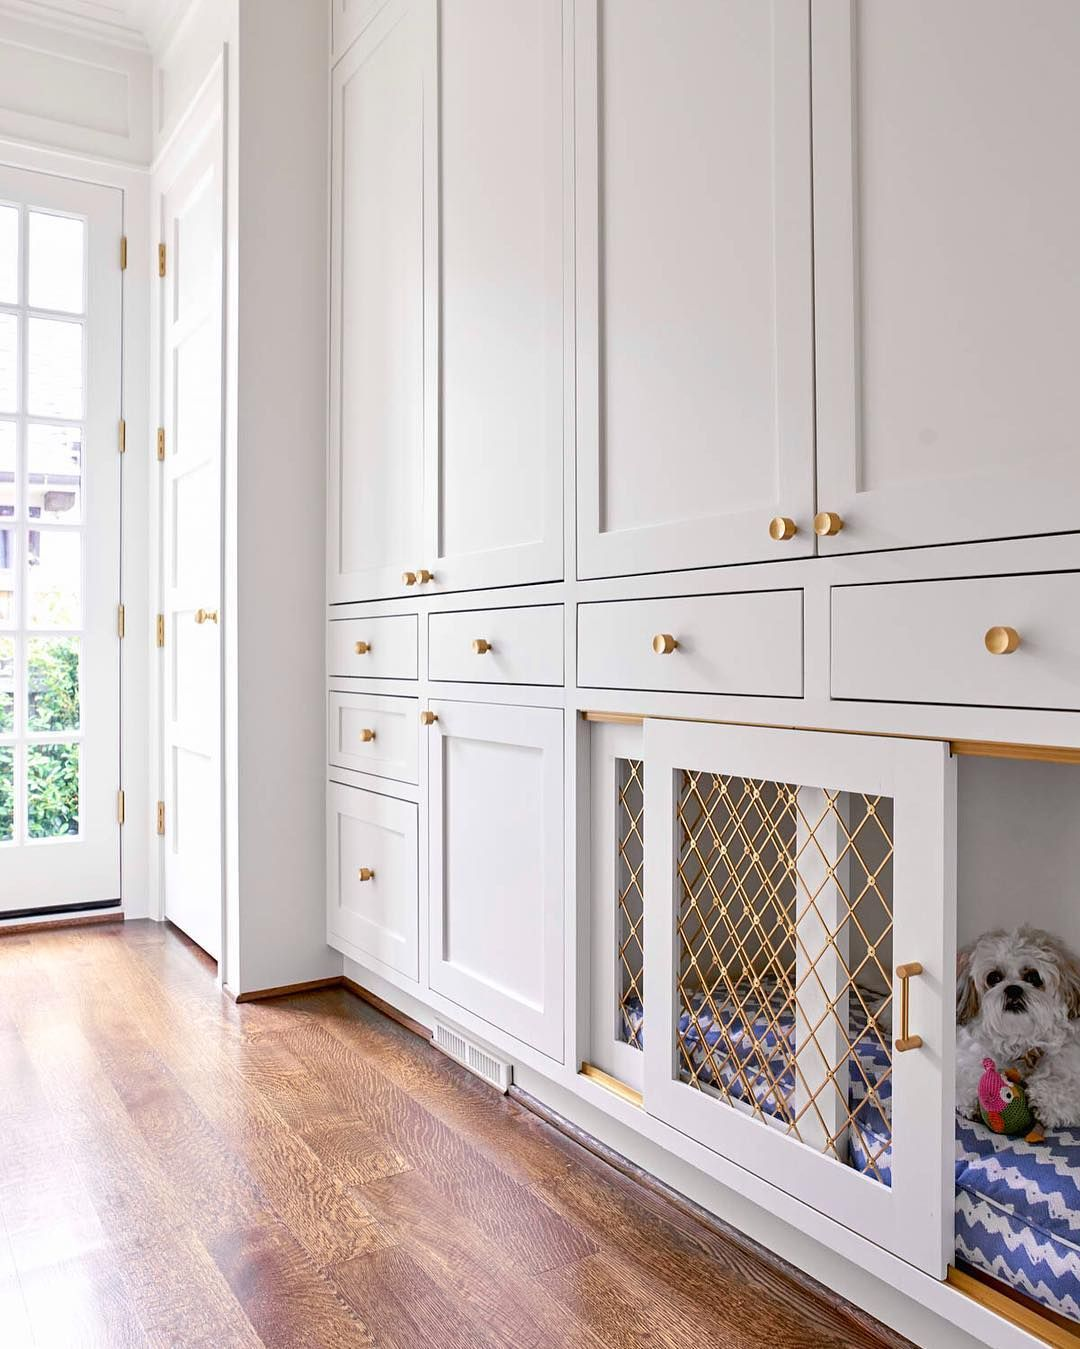 Merveilleux Custom Dog House By Collins Interiors | Custom Cabinets With Brass Hardware  | Mudroom Design